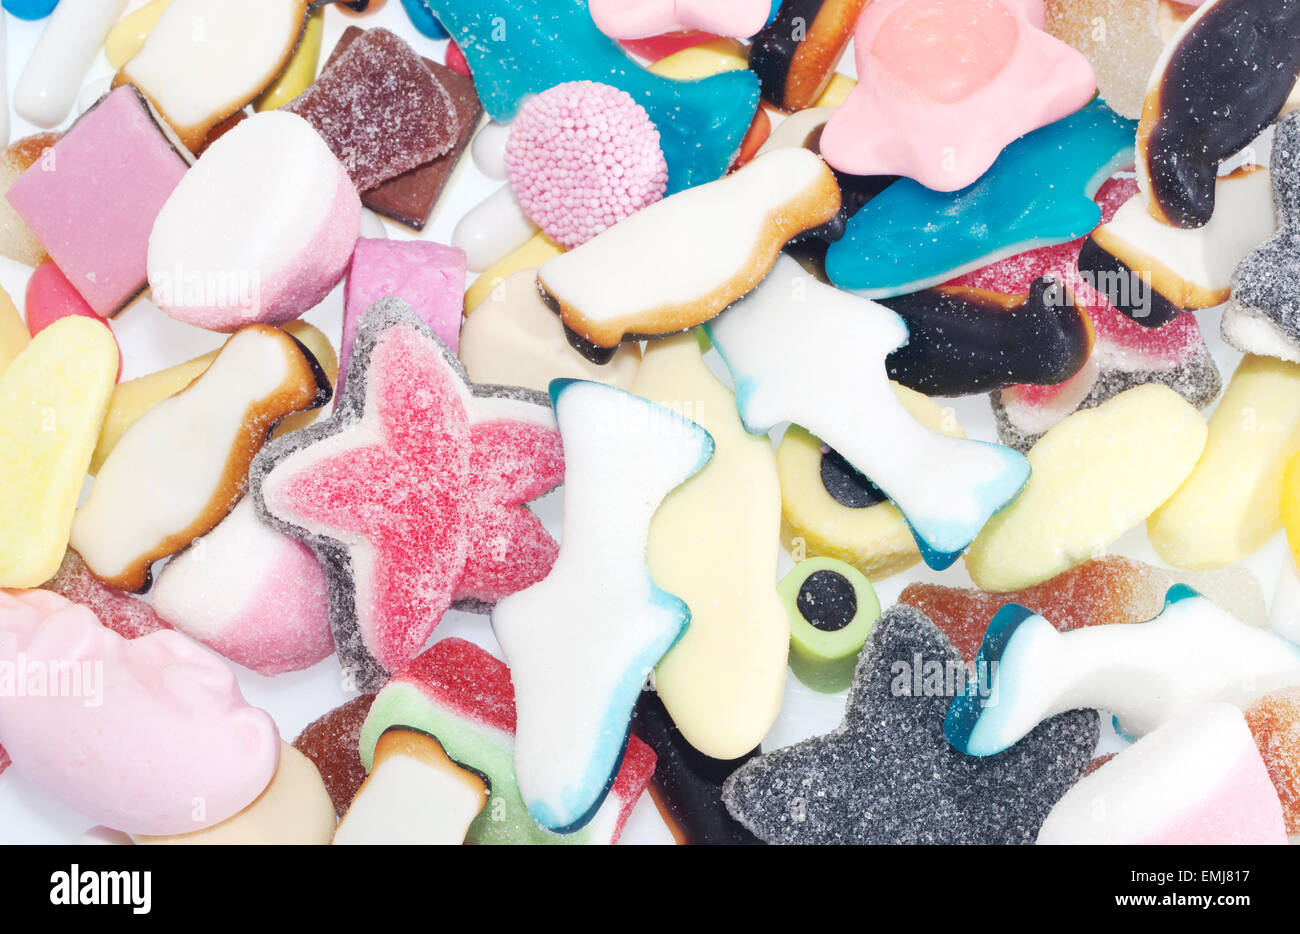 Jelly Candy - Stock Image